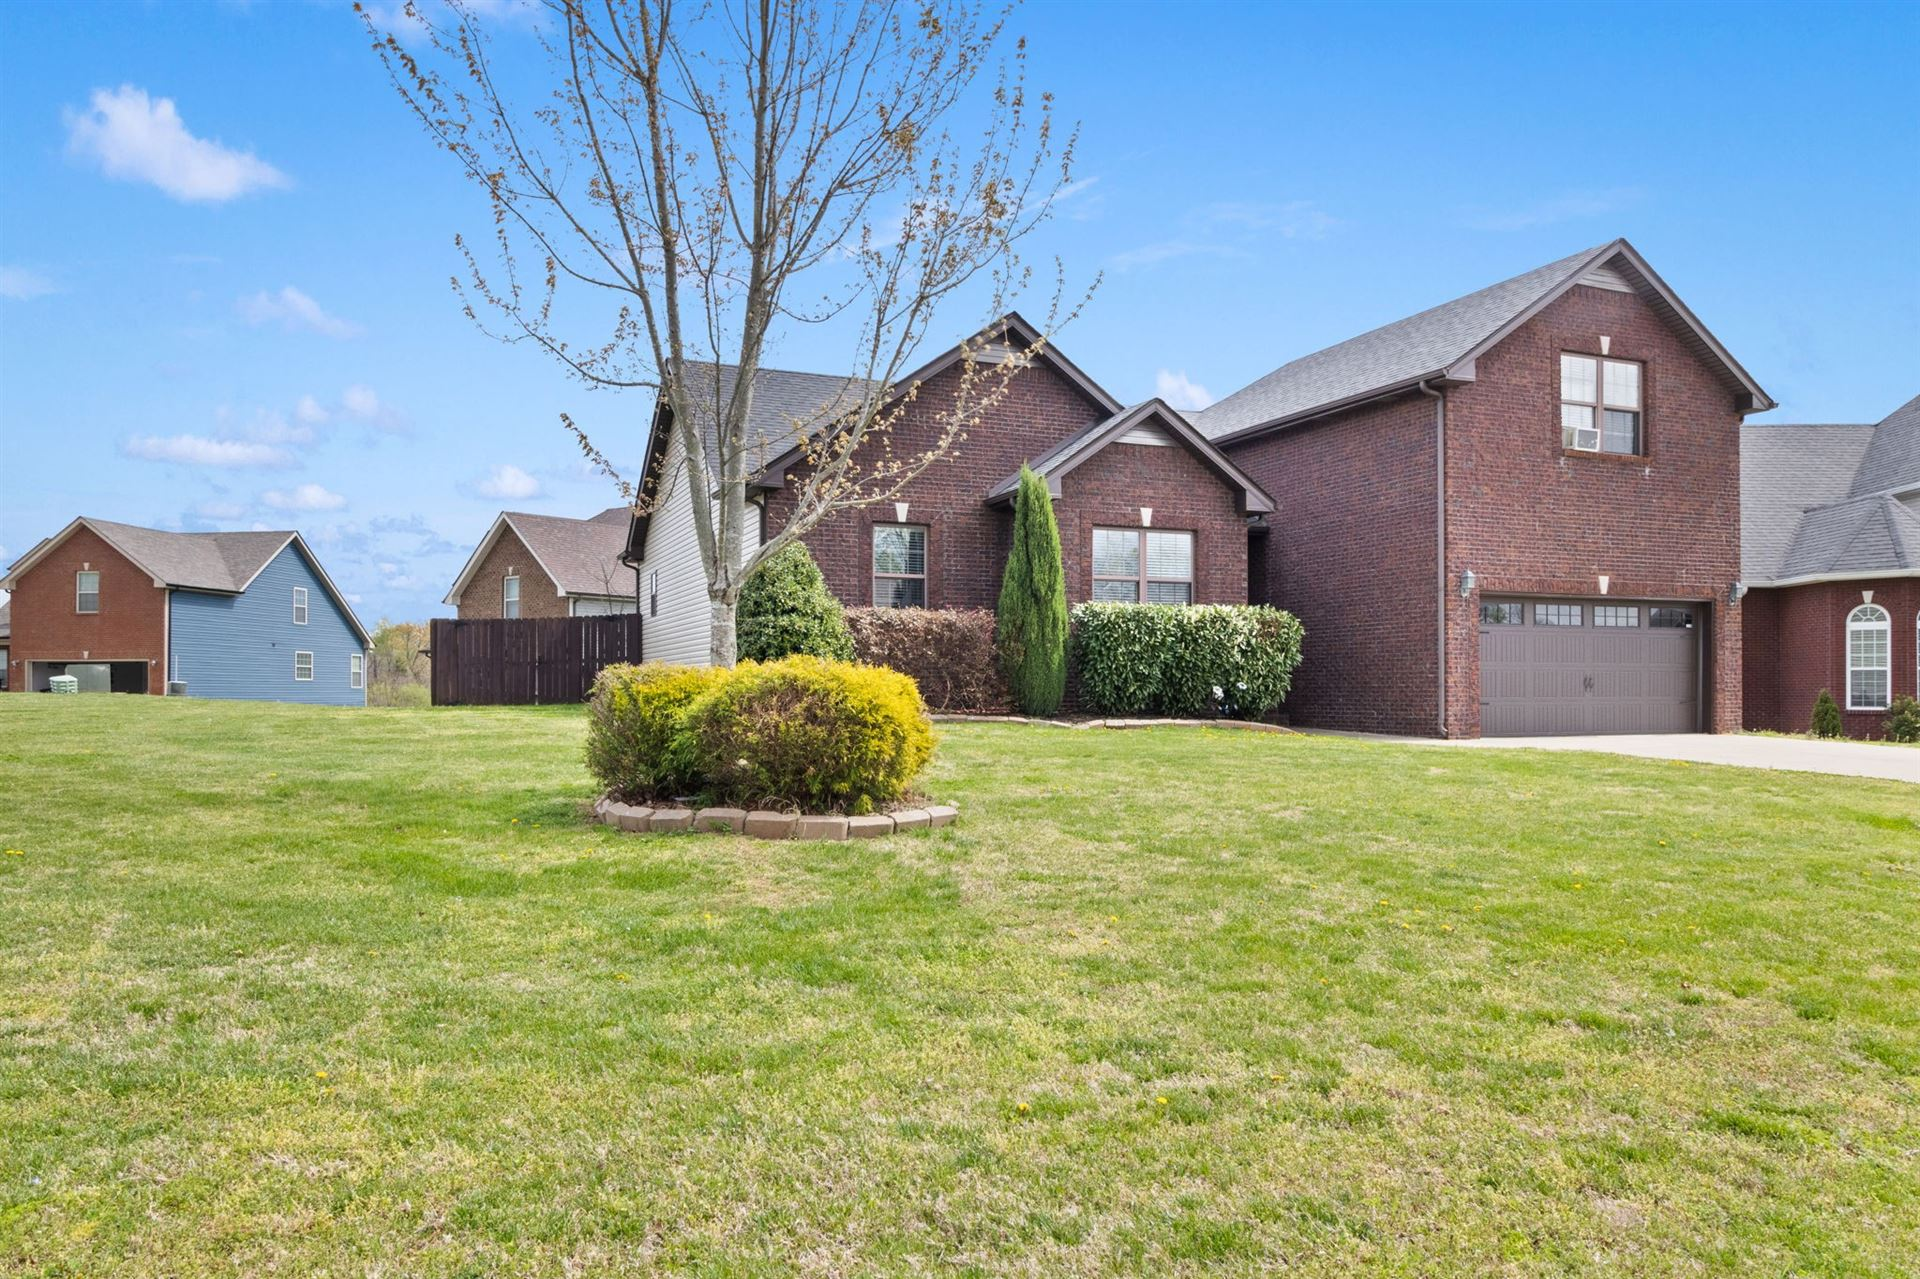 2267 Ellington Gait Dr, Clarksville, TN 37043 - MLS#: 2243228